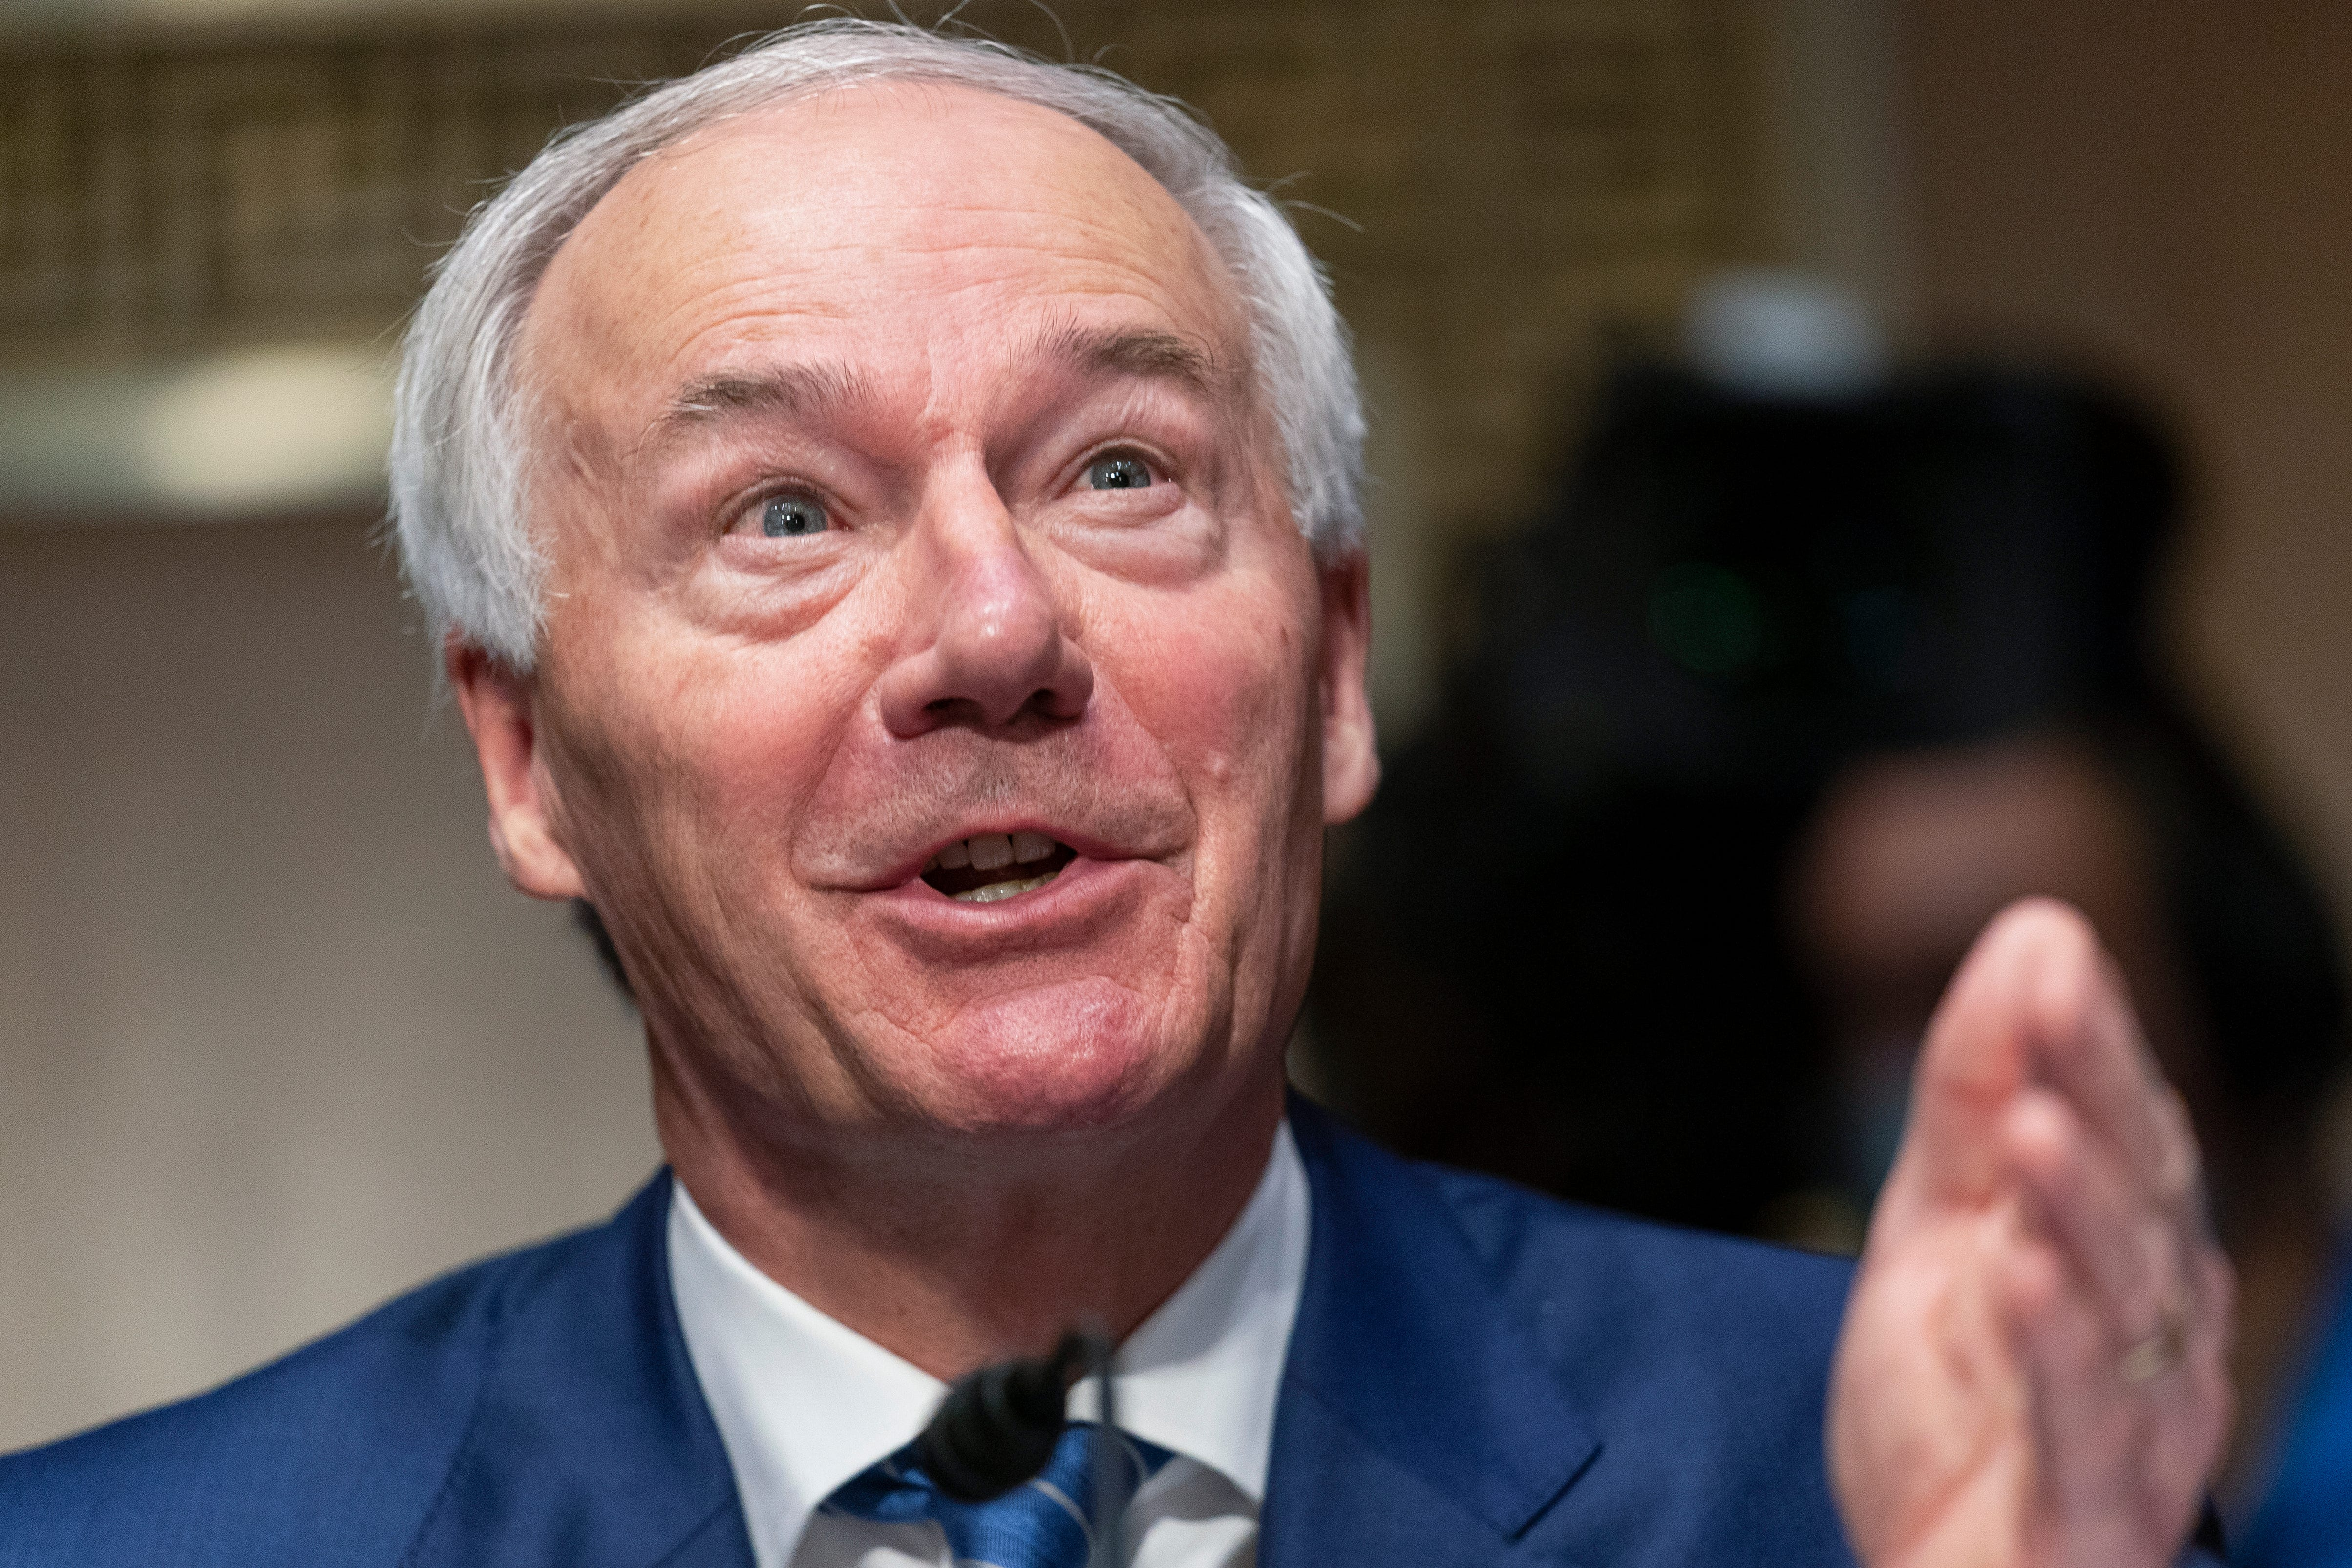 Arkansas Gov. Asa Hutchinson said aid was needed but the $350 million for states and cities was too much.